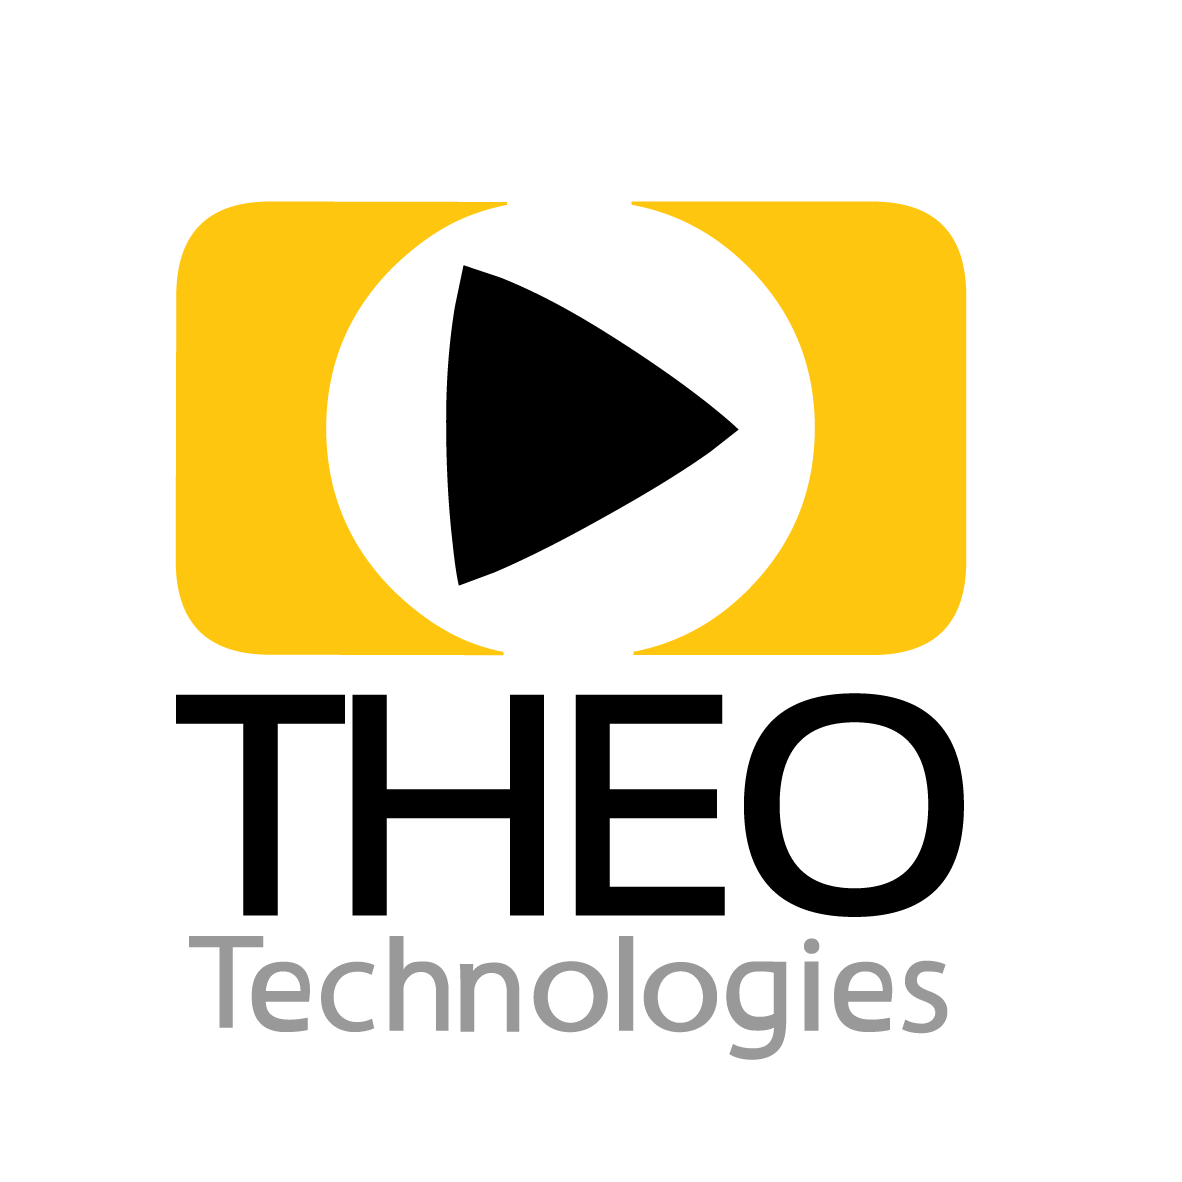 In conversation with Steven Tielemans, CEO - THEO Technologies NV